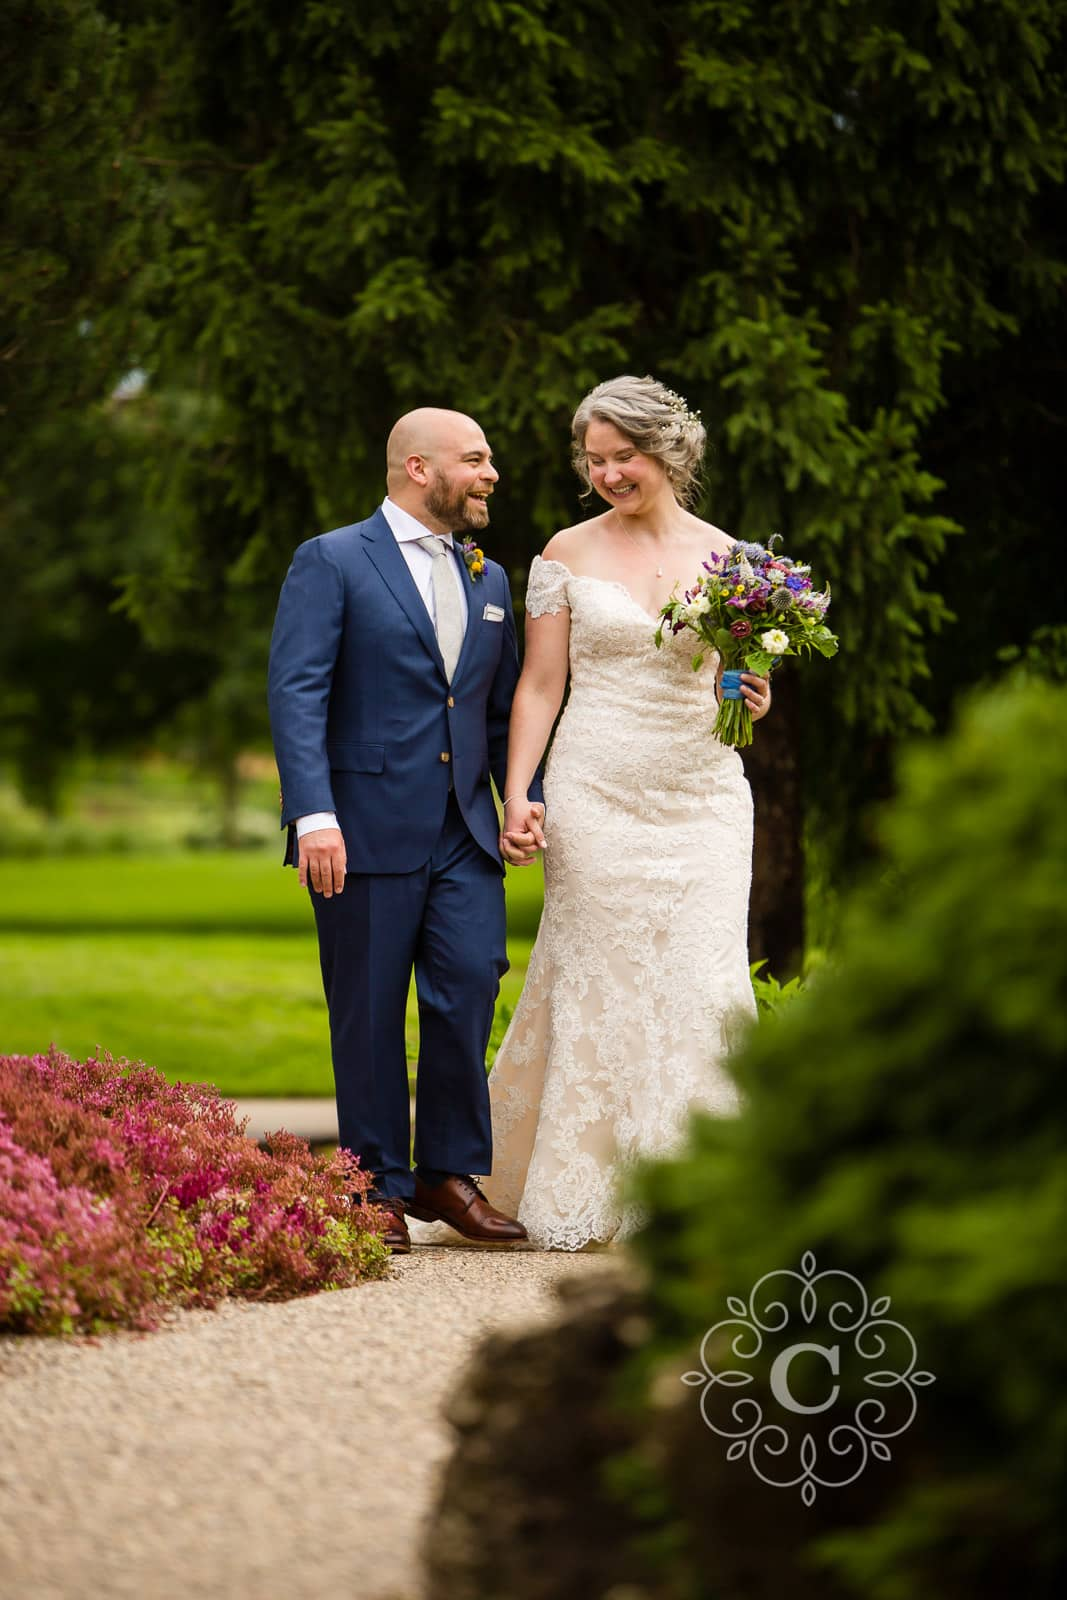 Lyndale Peace Park Garden Wedding Photo